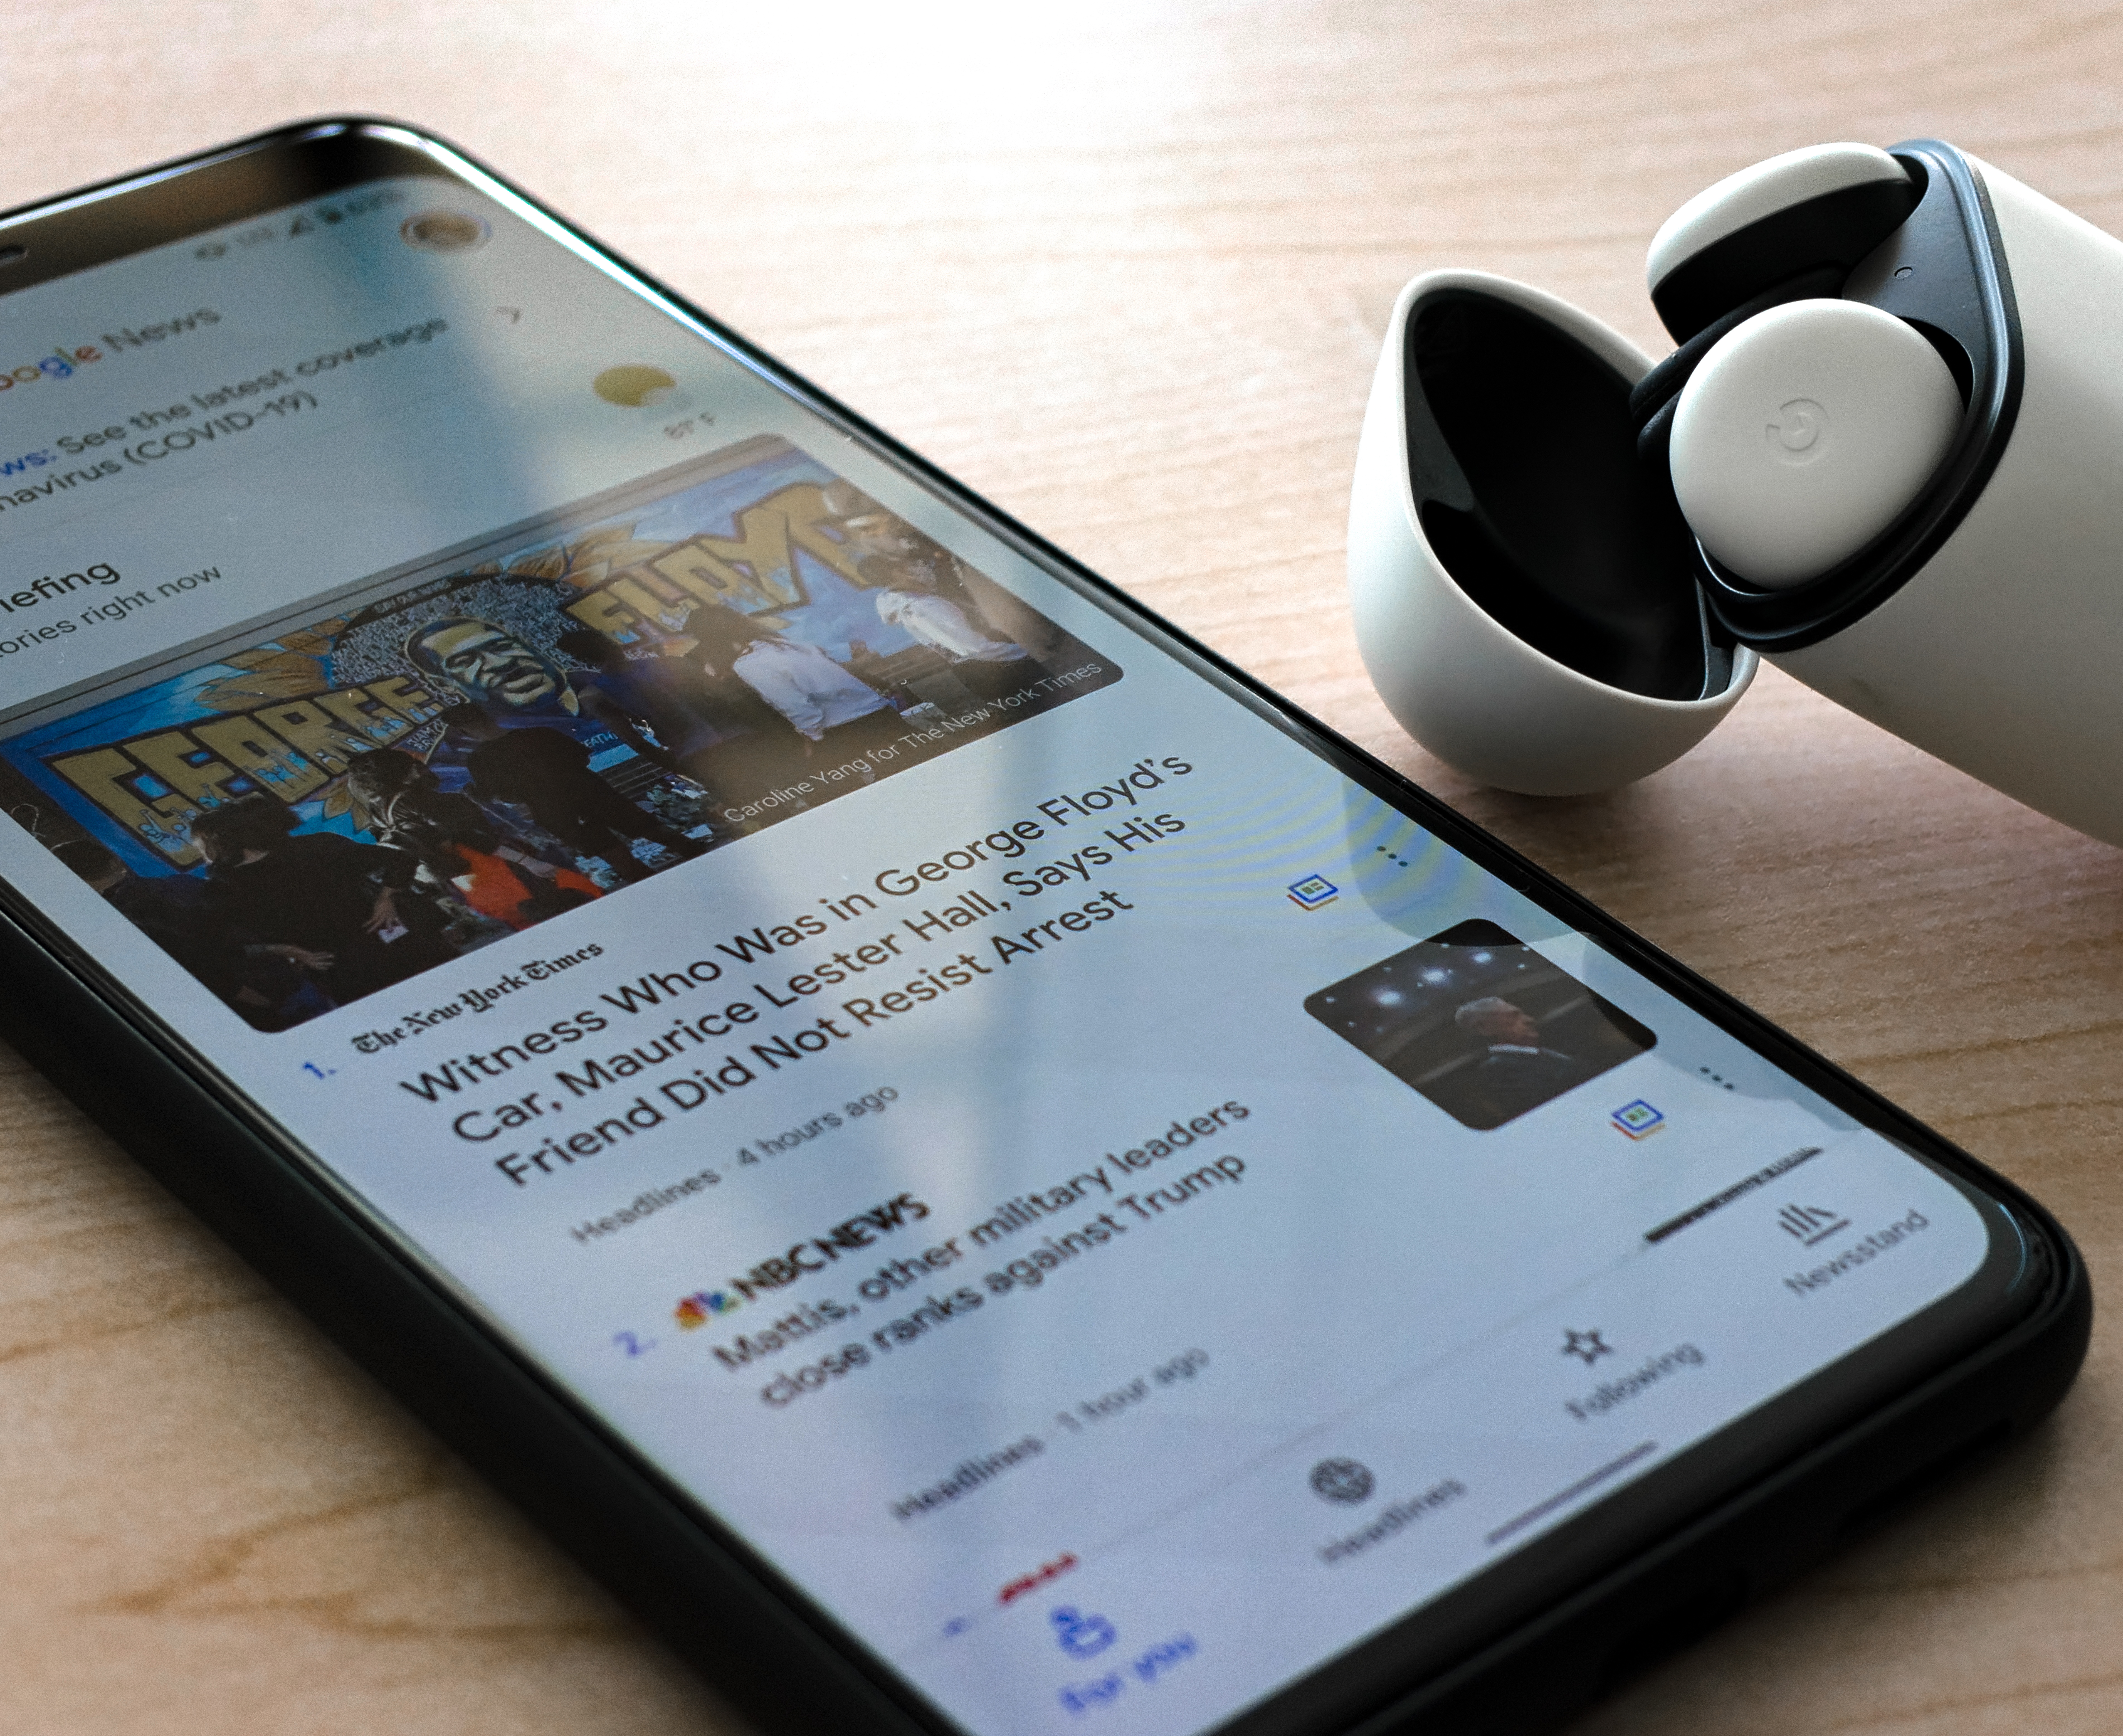 A Google Pixel 4 XL displays news of the Nationwide Protests while resting next to a pair of Pixel Buds